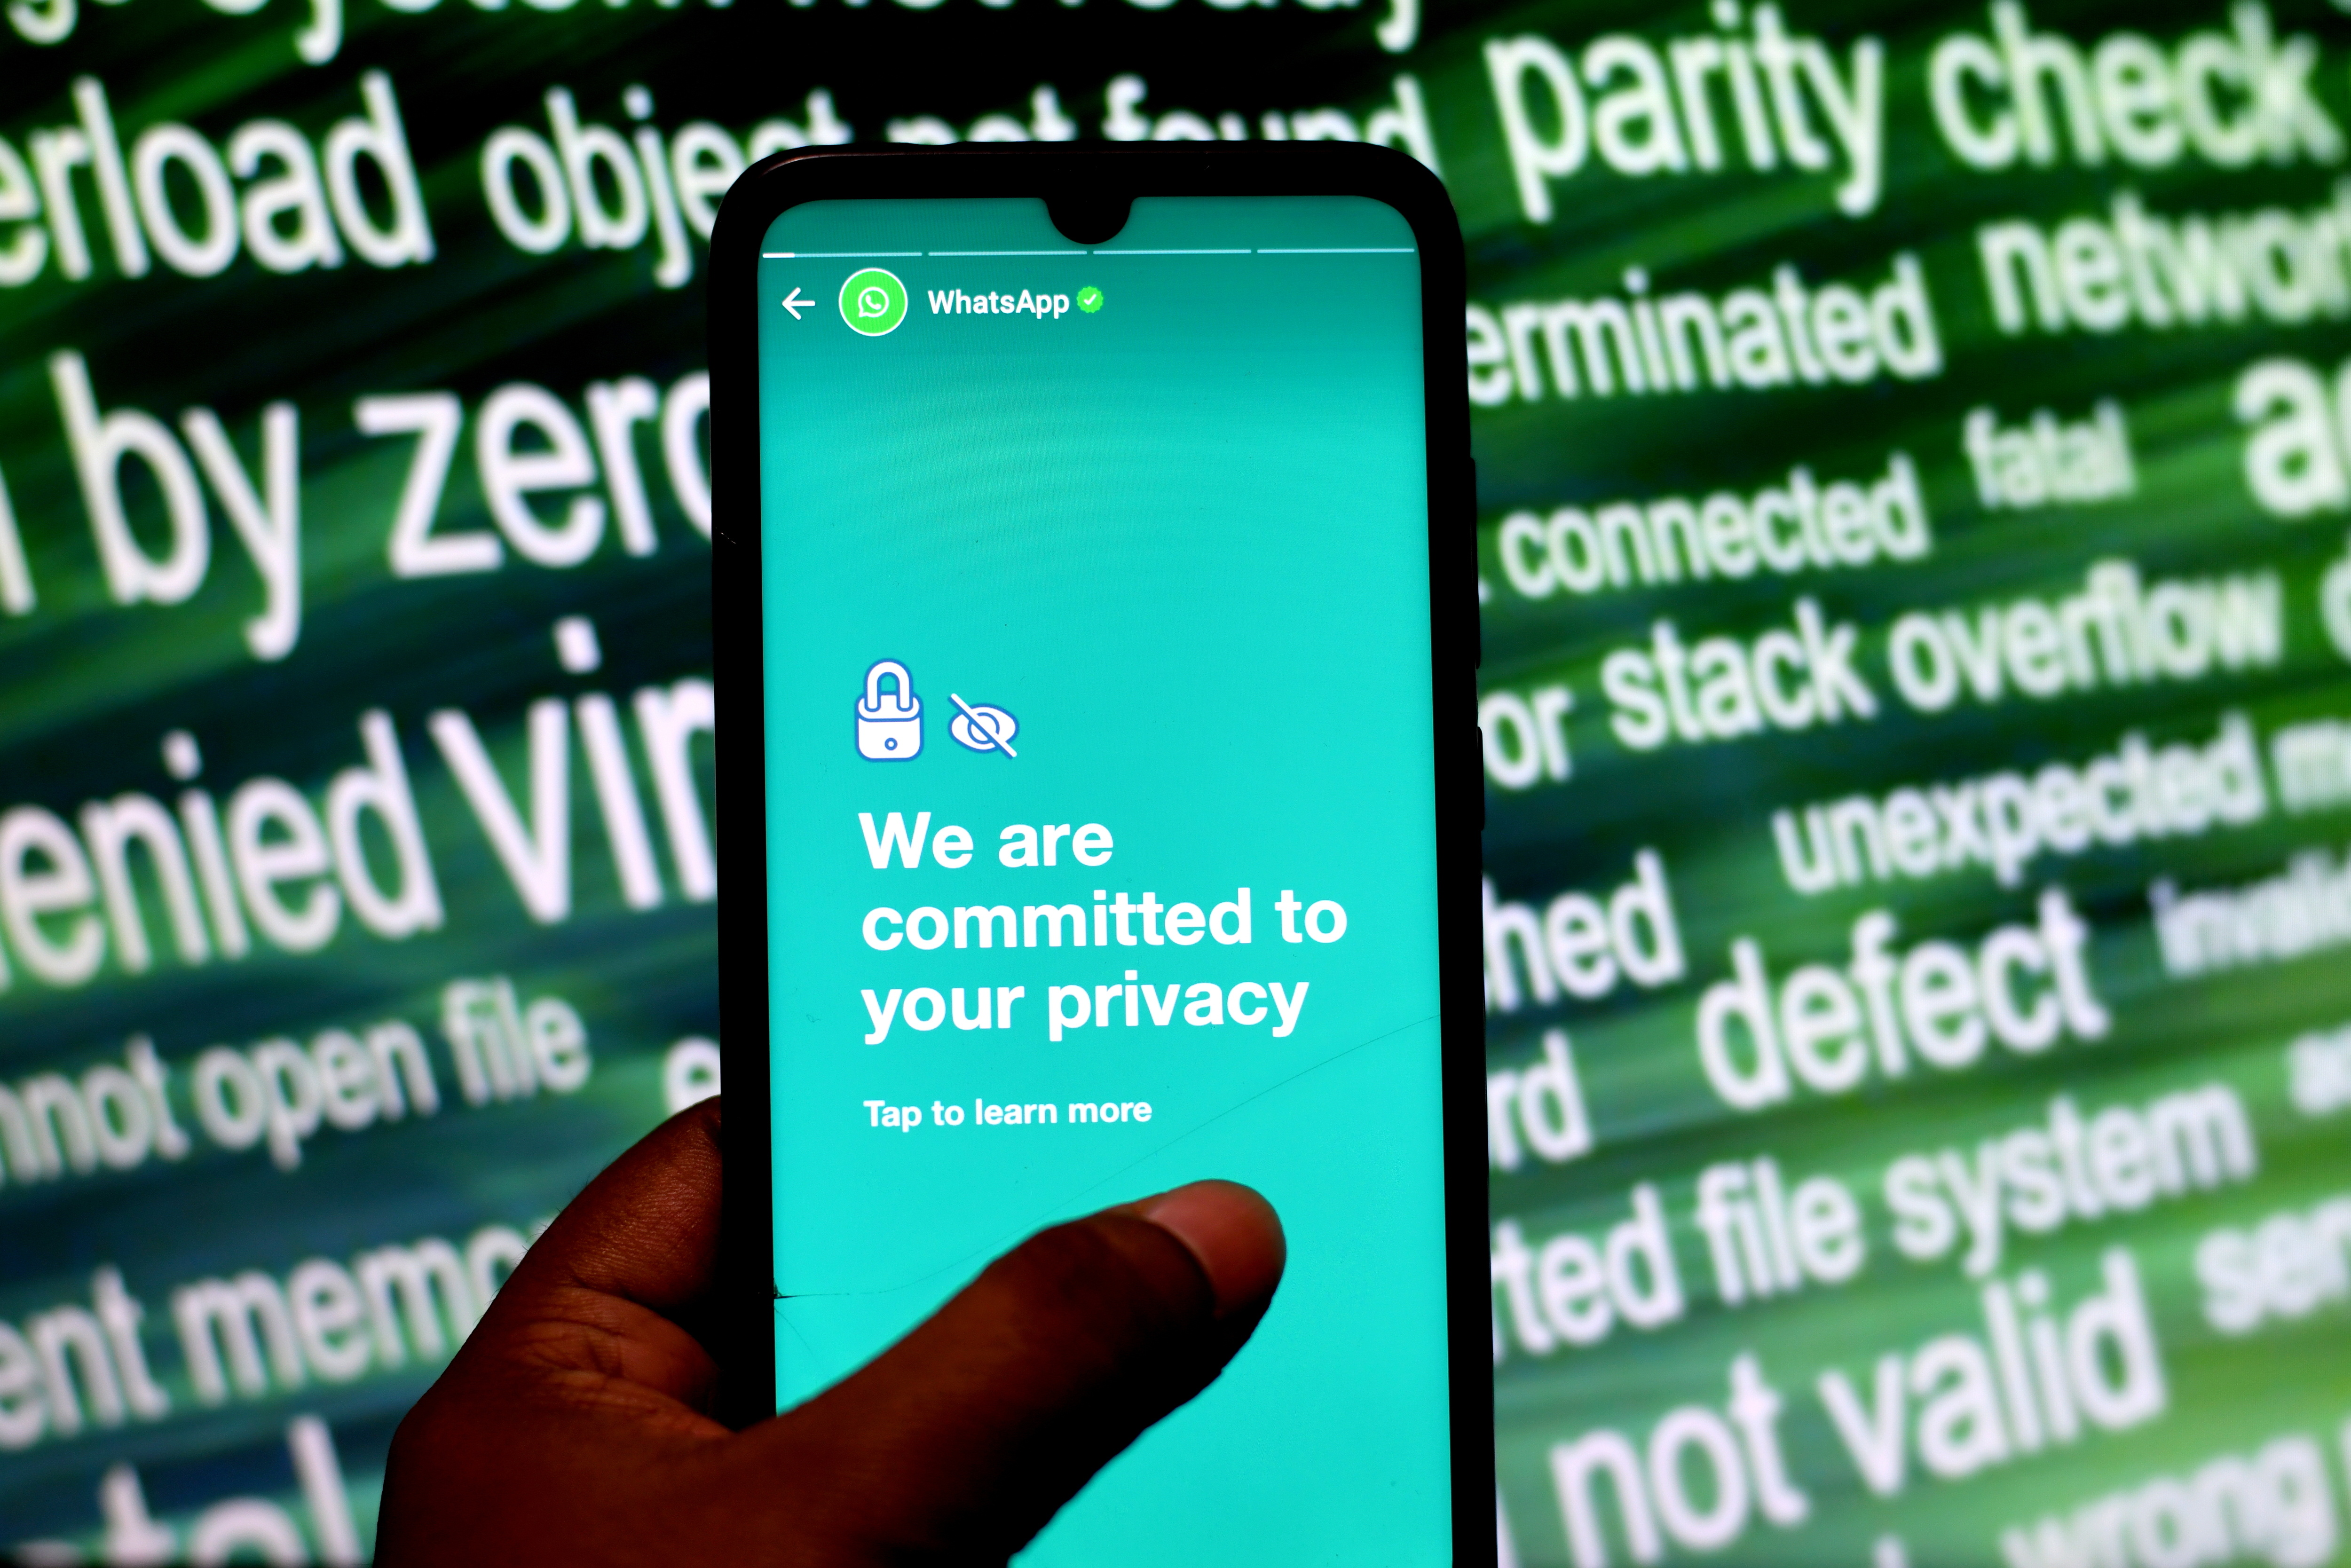 WhatsApp uses Stories to try and assuage users' privacy fears